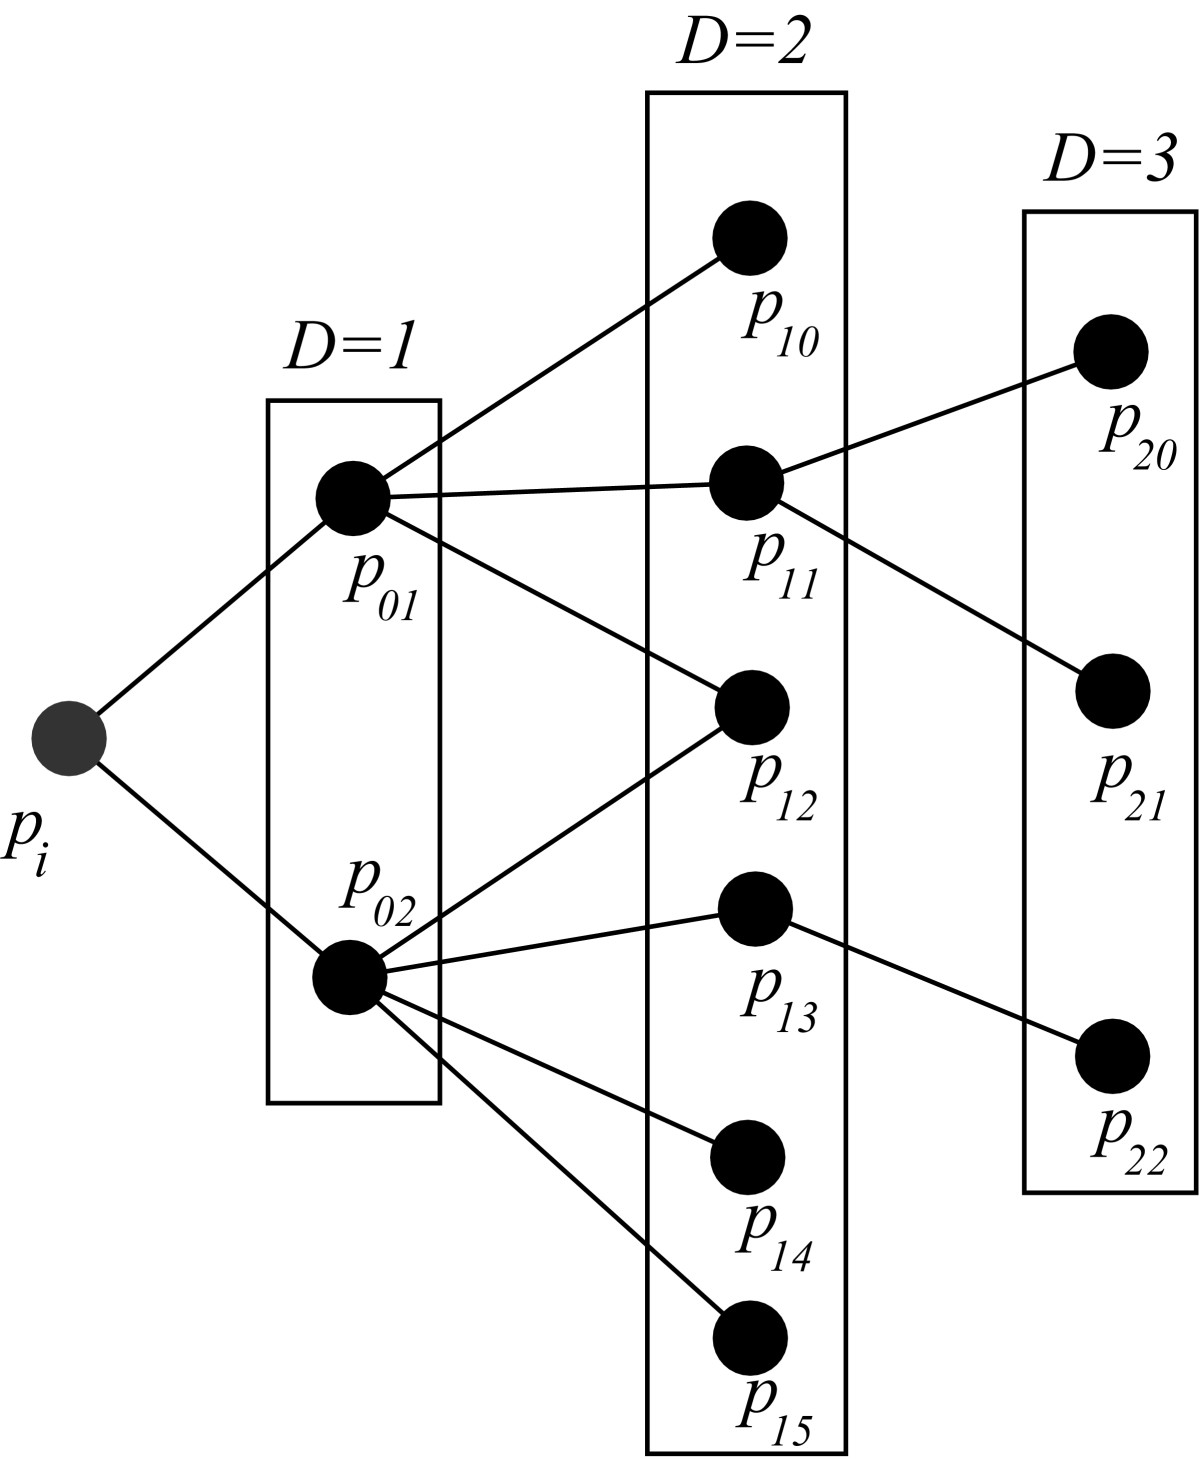 https://static-content.springer.com/image/art%3A10.1186%2F2192-1962-1-6/MediaObjects/13673_2011_Article_5_Fig10_HTML.jpg